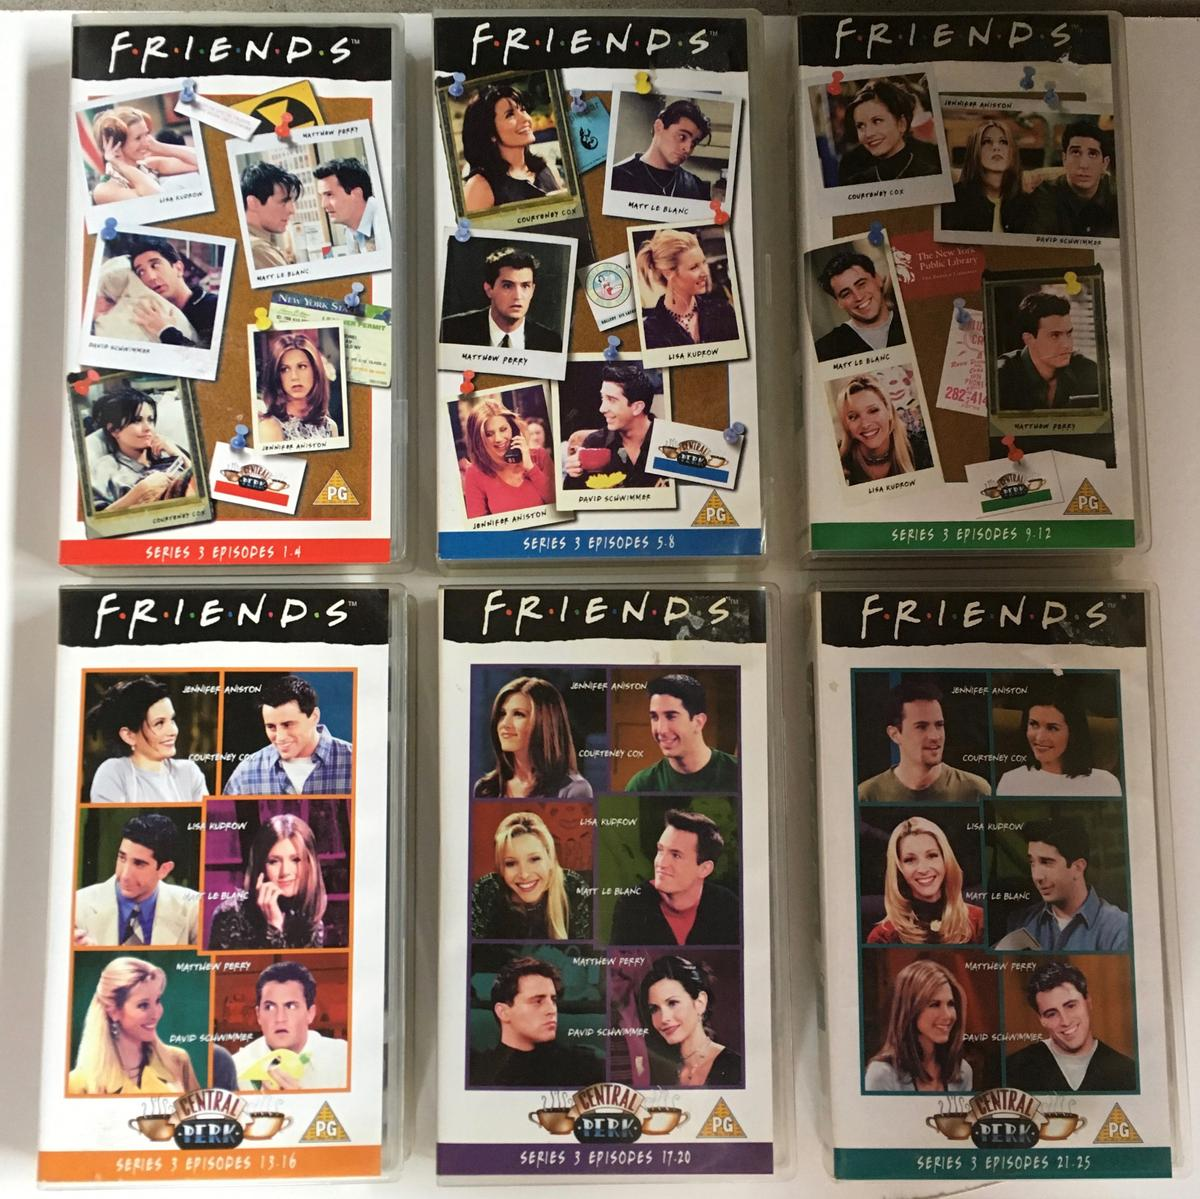 Friends' VHS Tapes - Job Lot in SY12 Cockshutt for £25 00